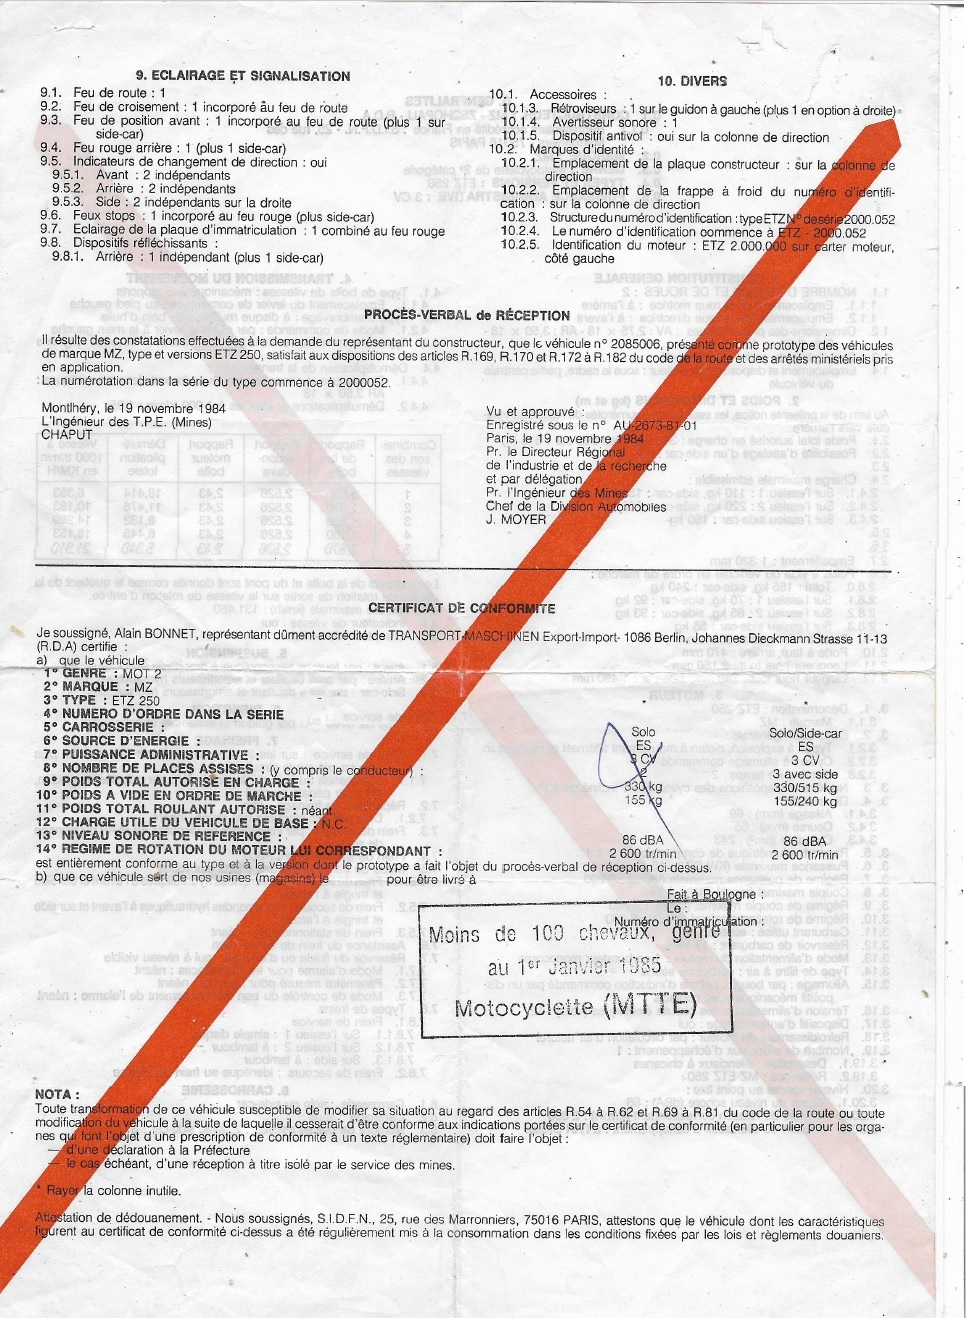 Genre national MZ TS 250/1 immatriculation besoion d'aide. - Page 4 Barre_11